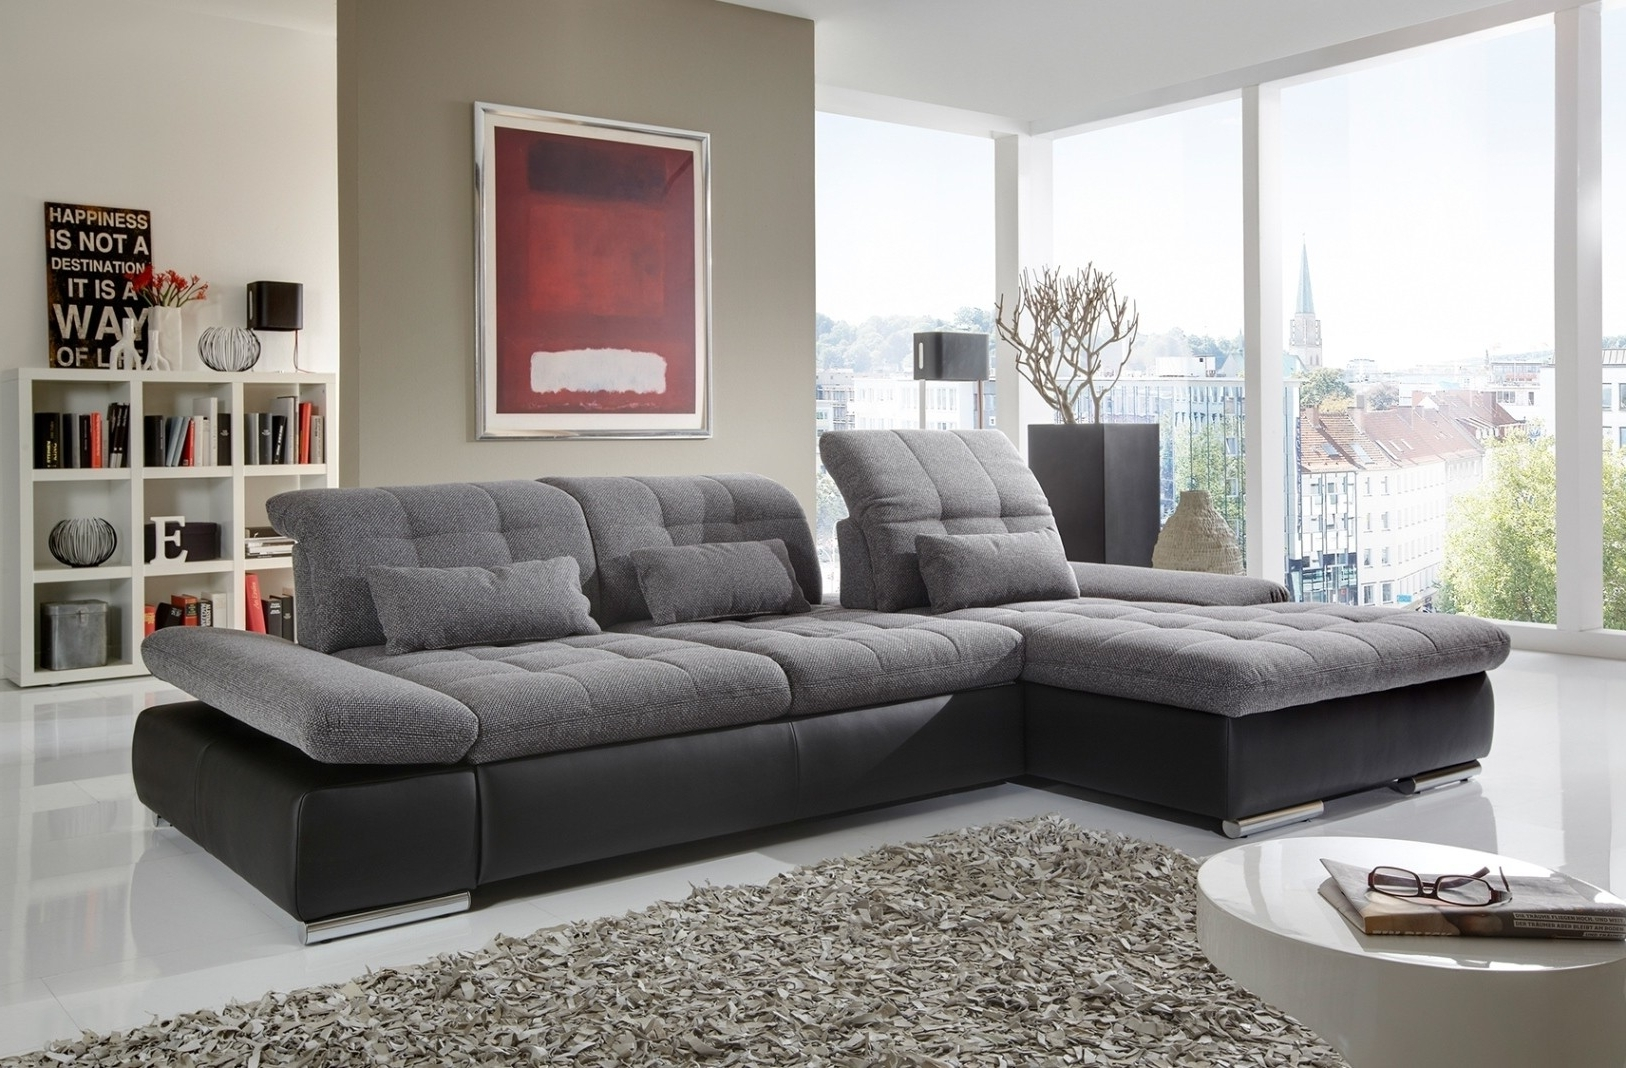 Well Known Alpine Sectional Sofa In Grey Fabric And Black Leather Left Chaise With Regard To Trinidad And Tobago Sectional Sofas (View 8 of 15)